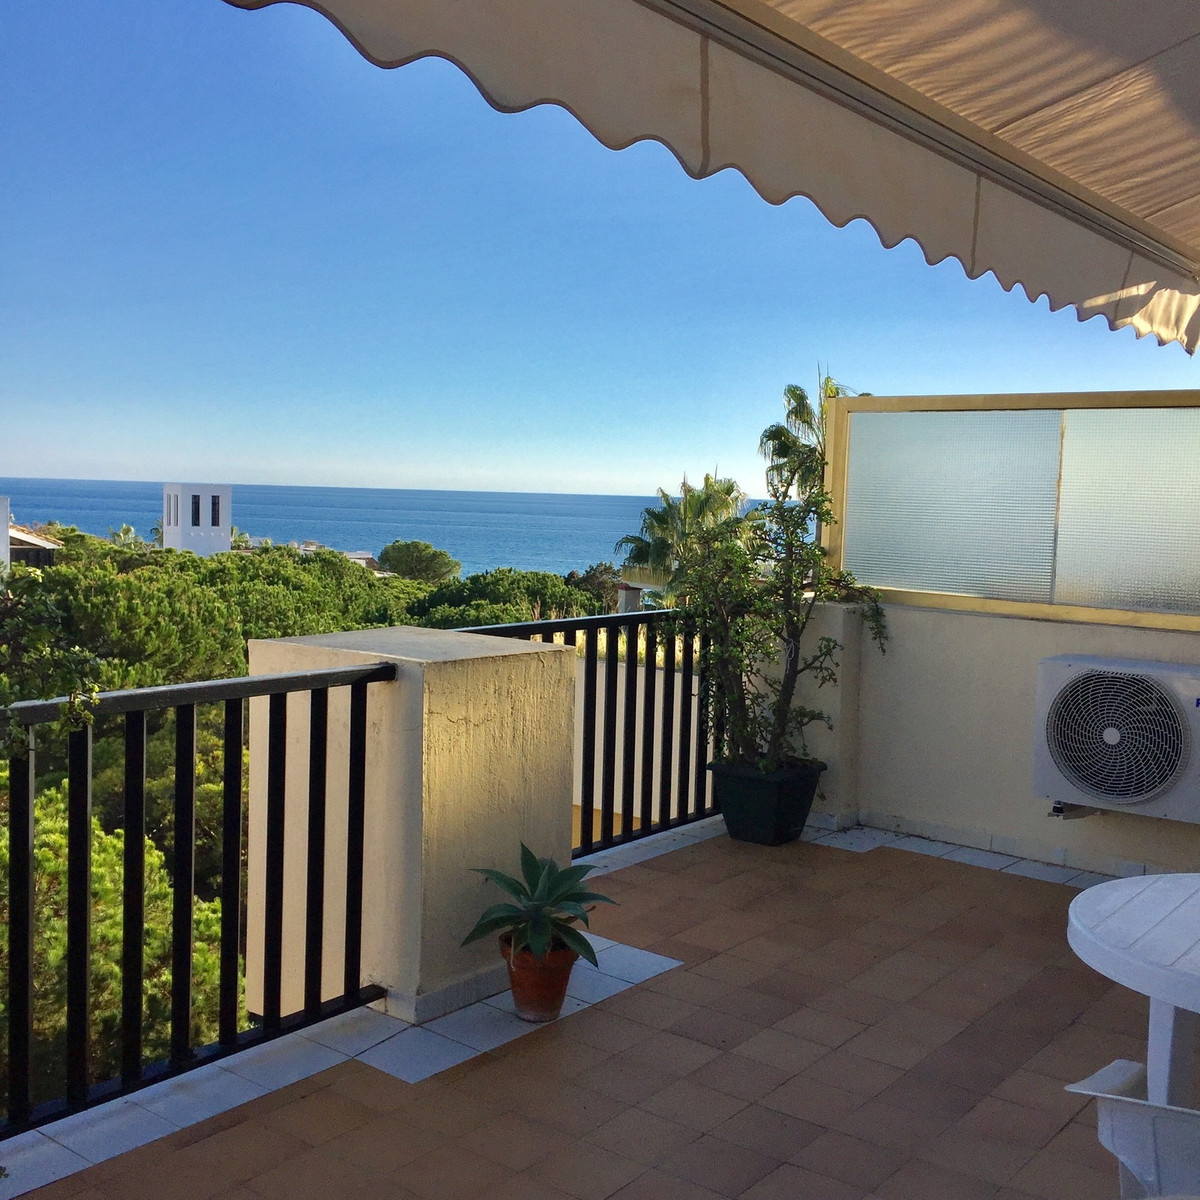 Top floor with Nice Sea Views. Frontline Beach Complex Studio / Apartment Located in prestigious Elv, Spain